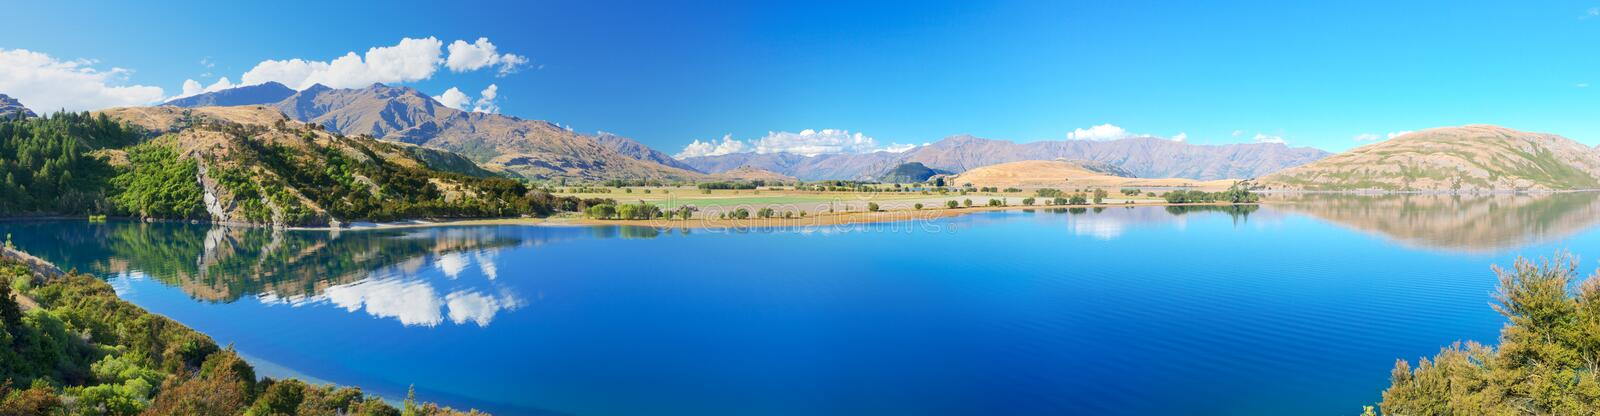 Lac Wanaka images stock